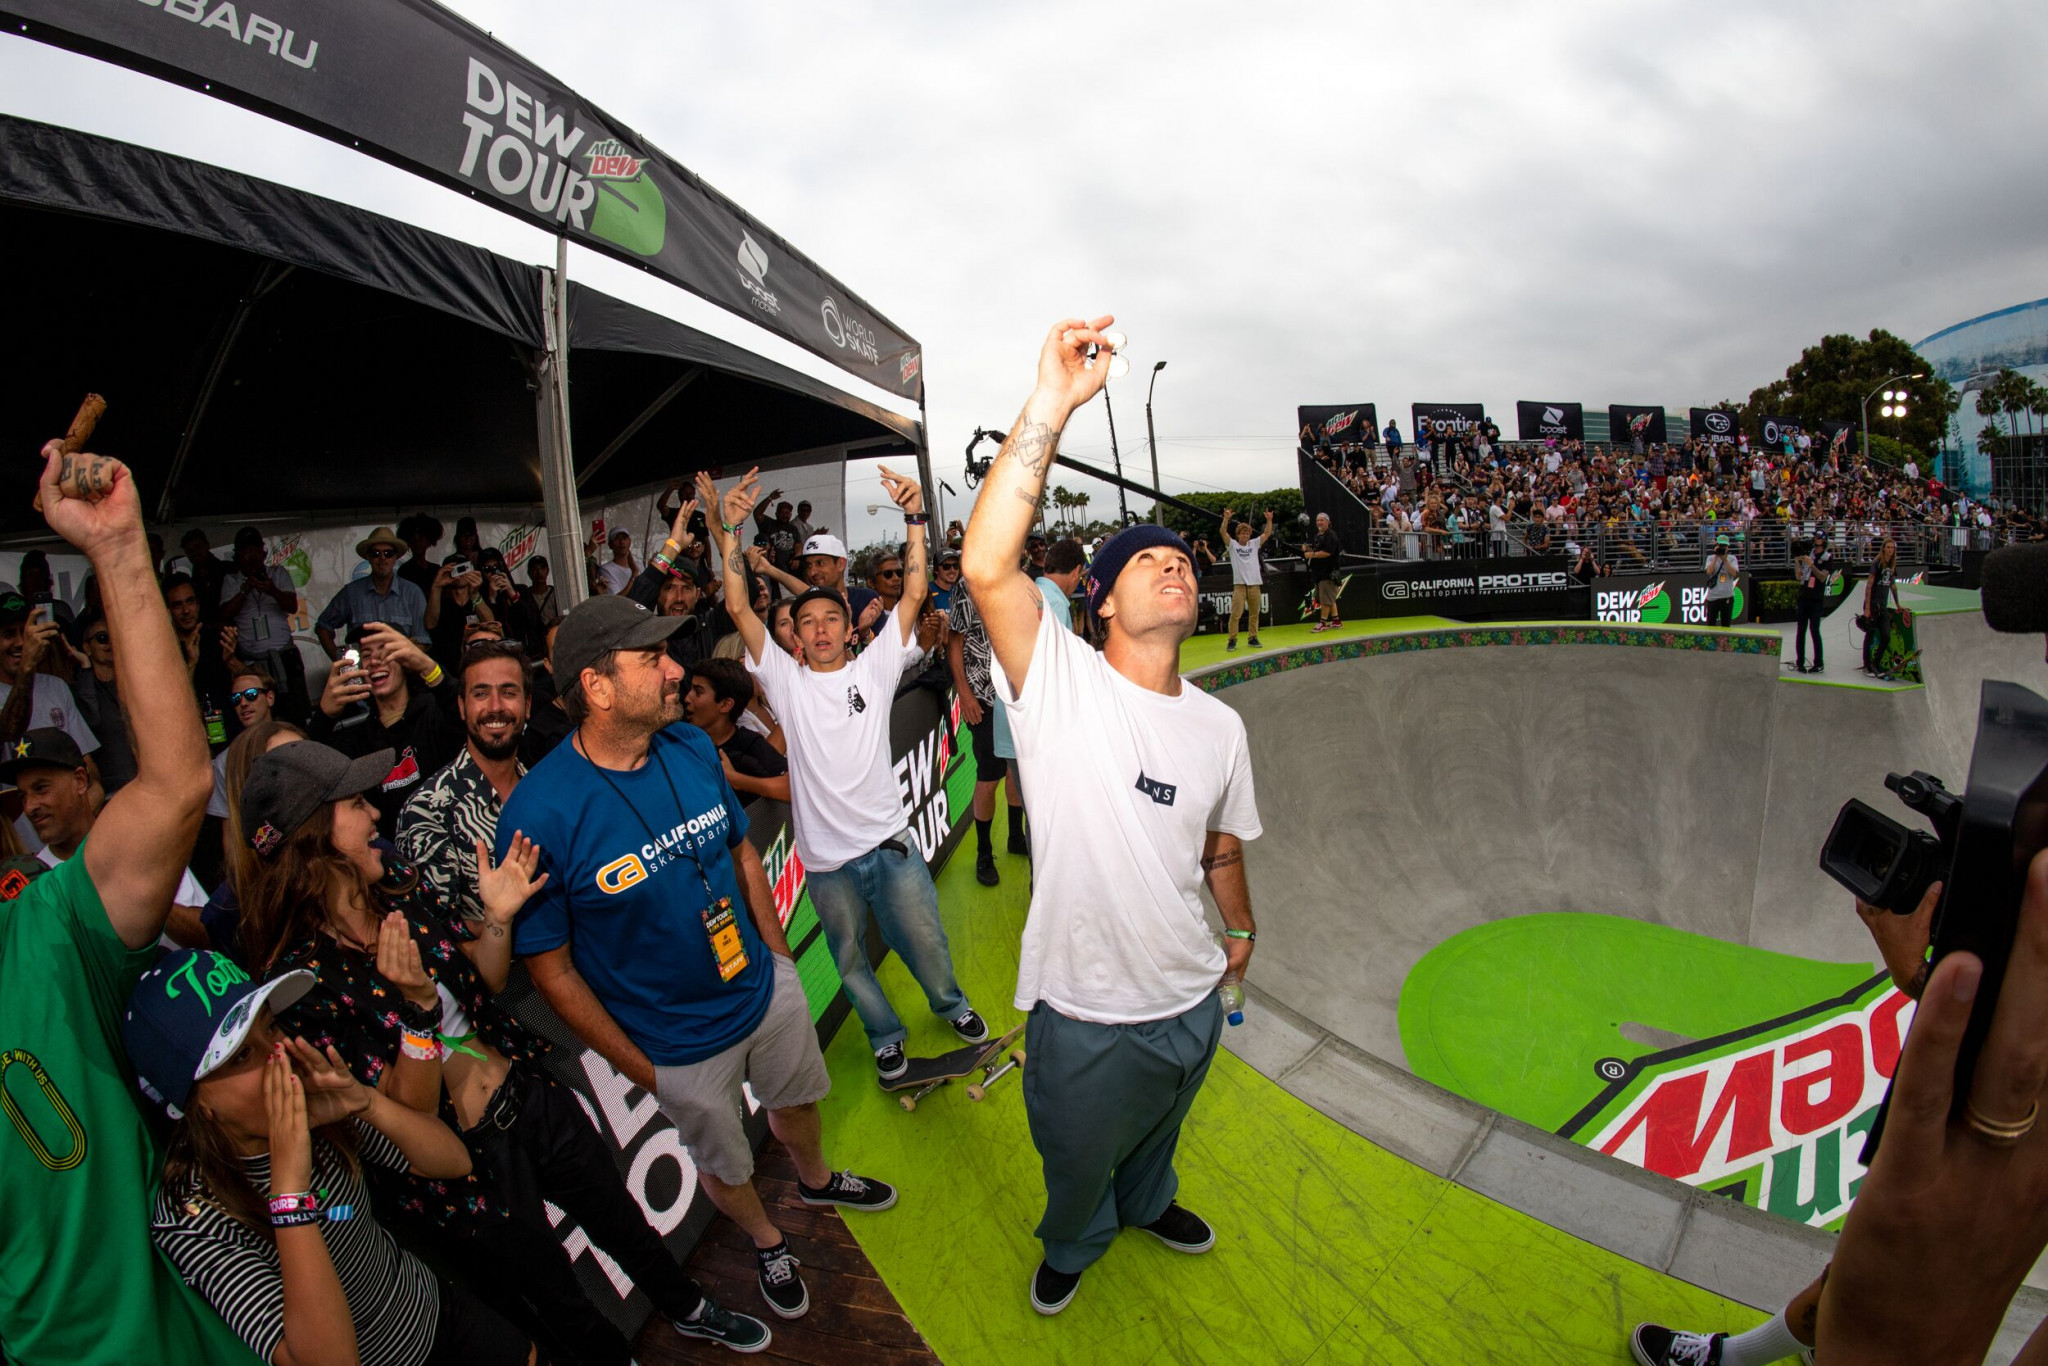 Pedro Barros of Brazil followed up his strong semi-final performance to win the men's park final ©Dew Tour